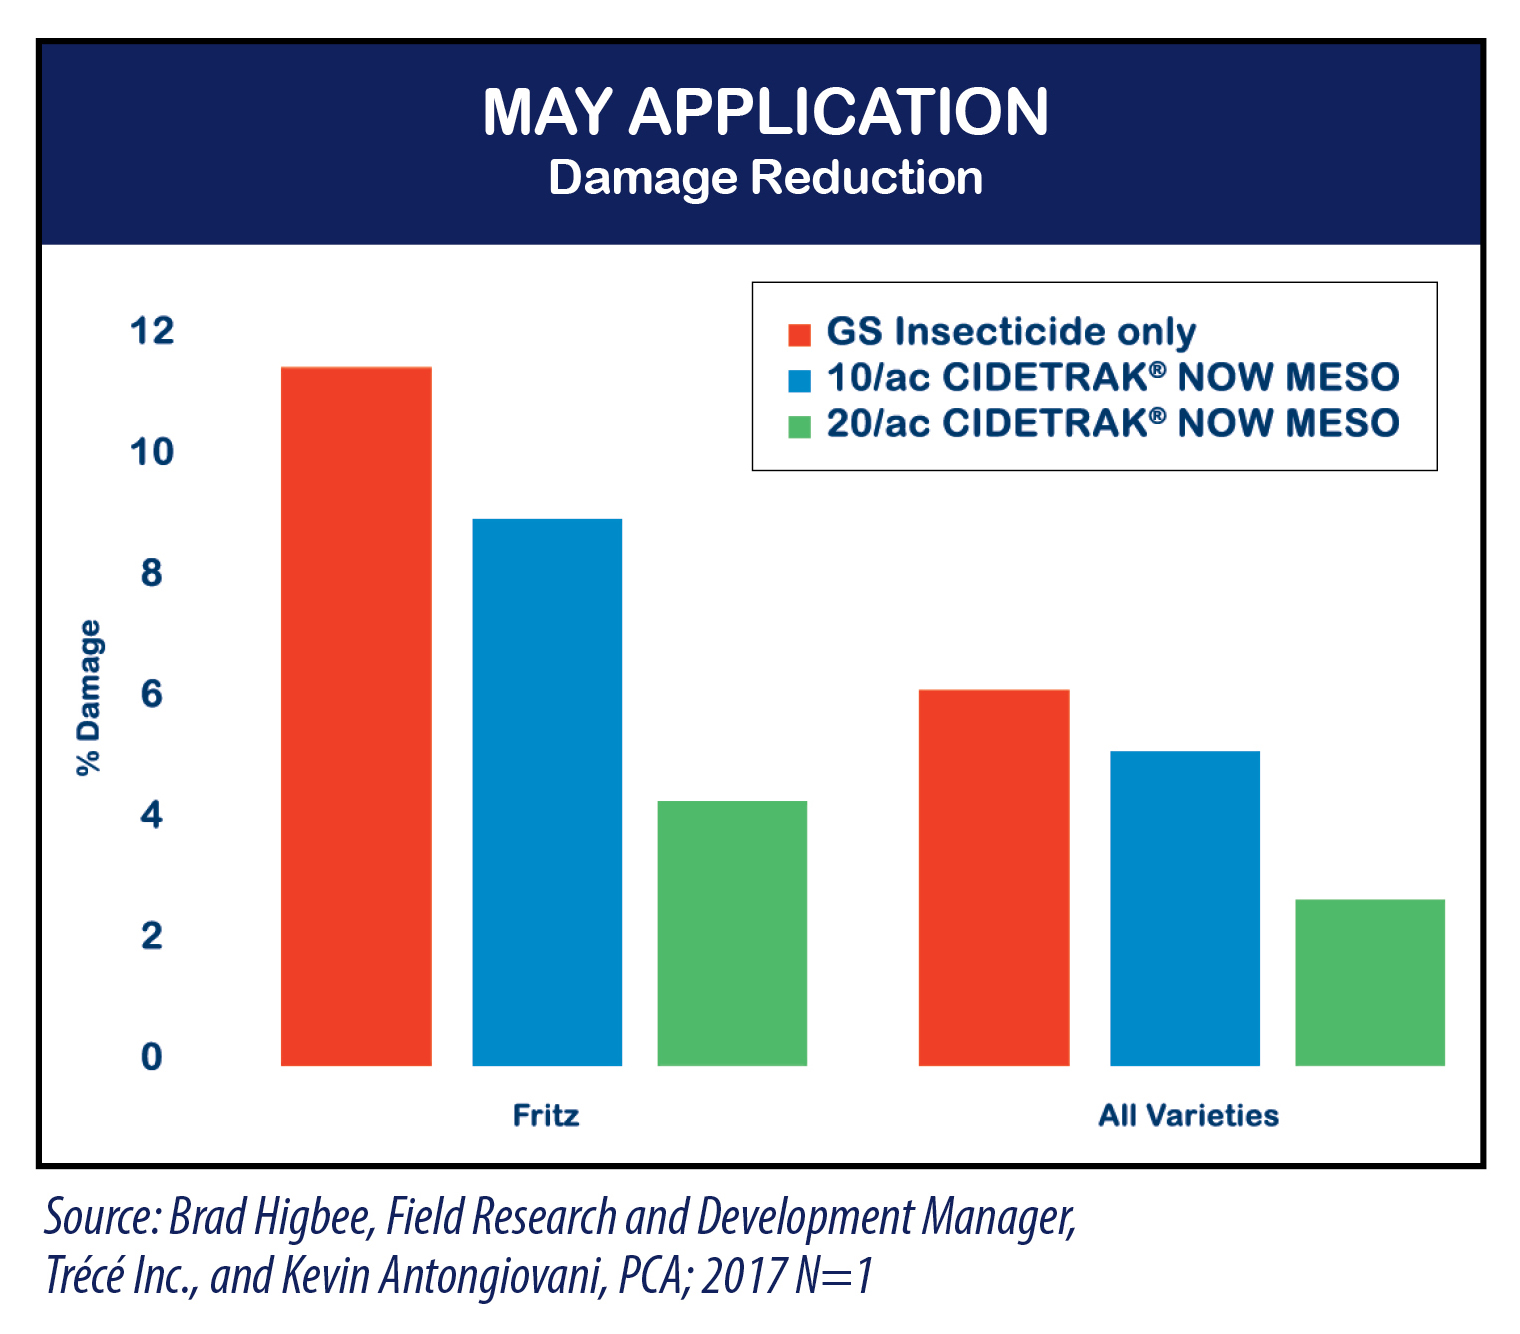 Chart May Application Showing Damage Reduction